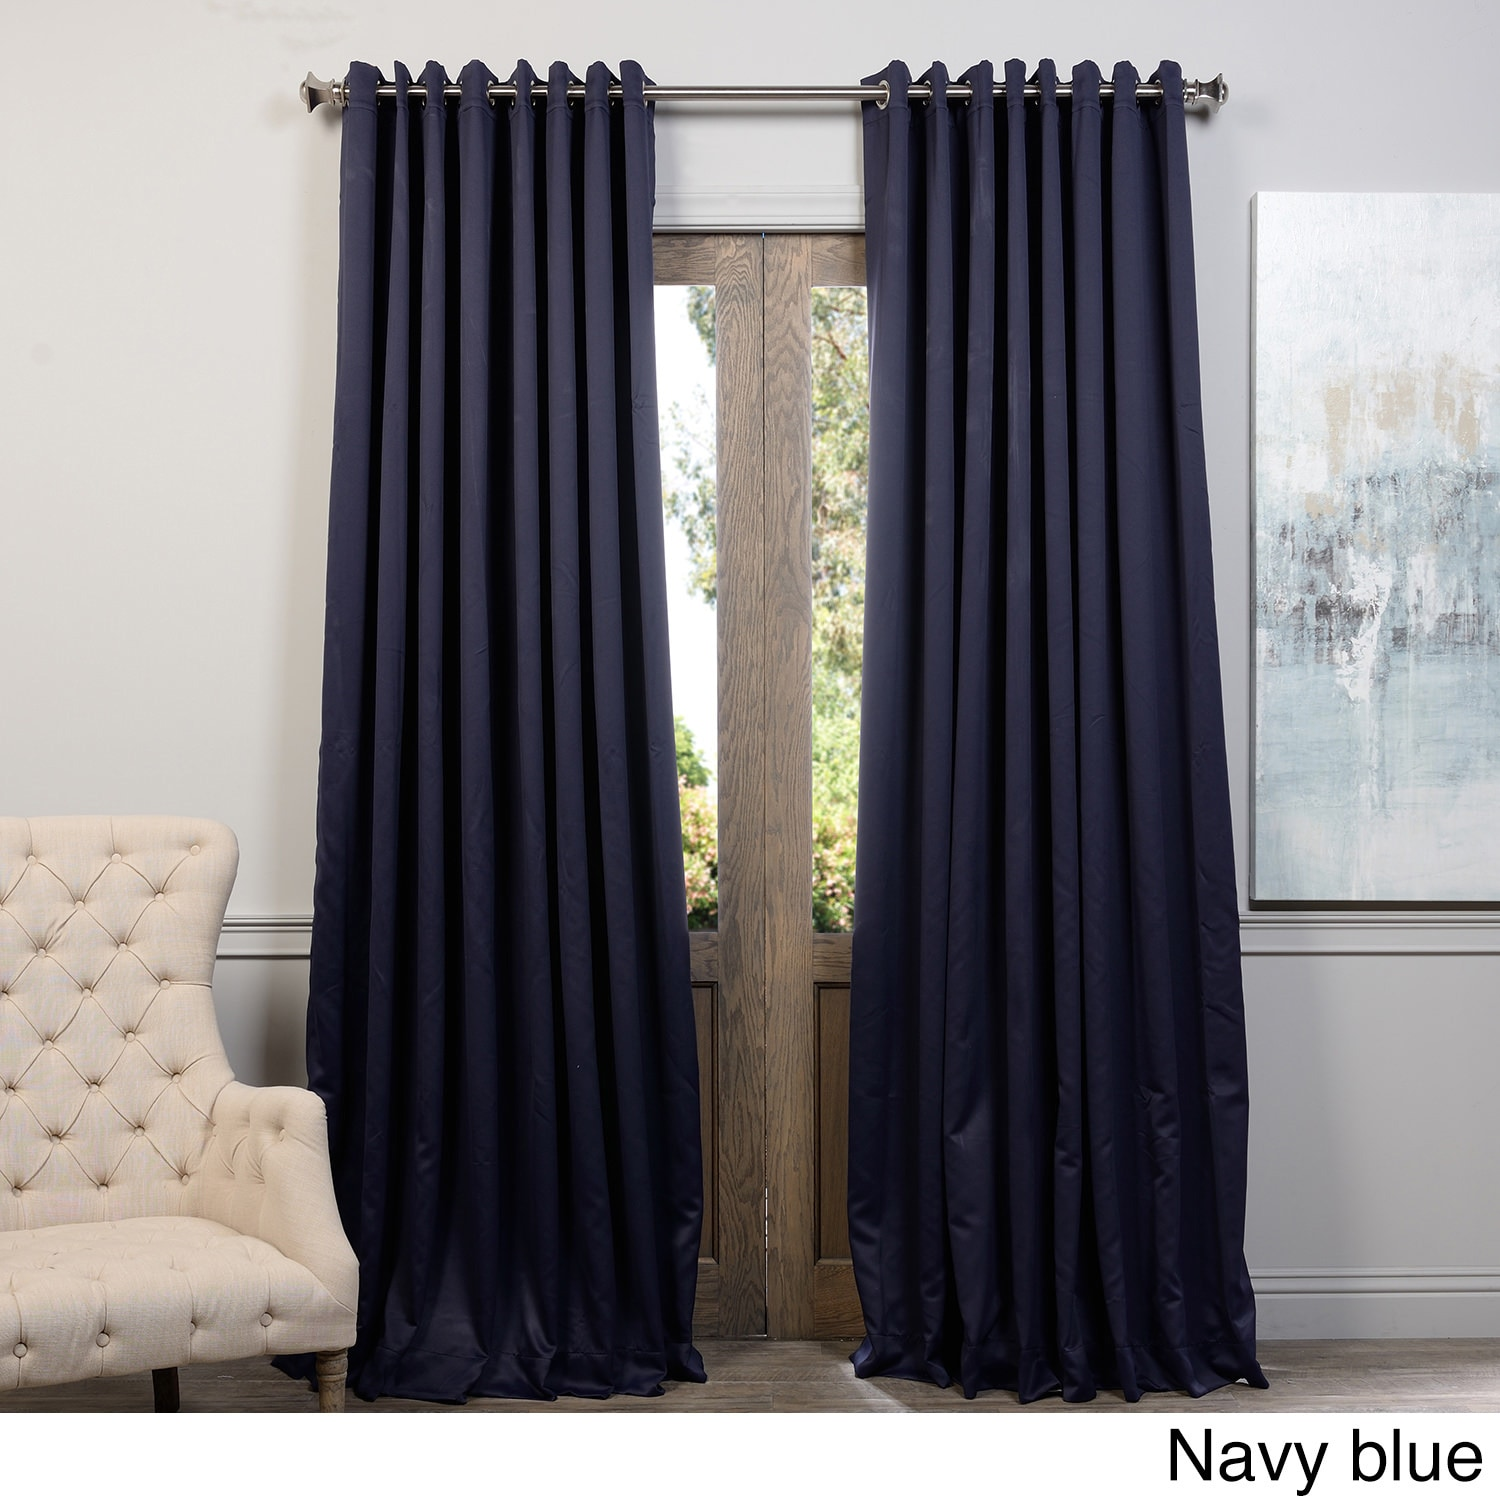 short striped treatments stunning gray walmart and blackout black grommet bead a curtains in curtain window outdoor shower inch sheer eclipse target white cool